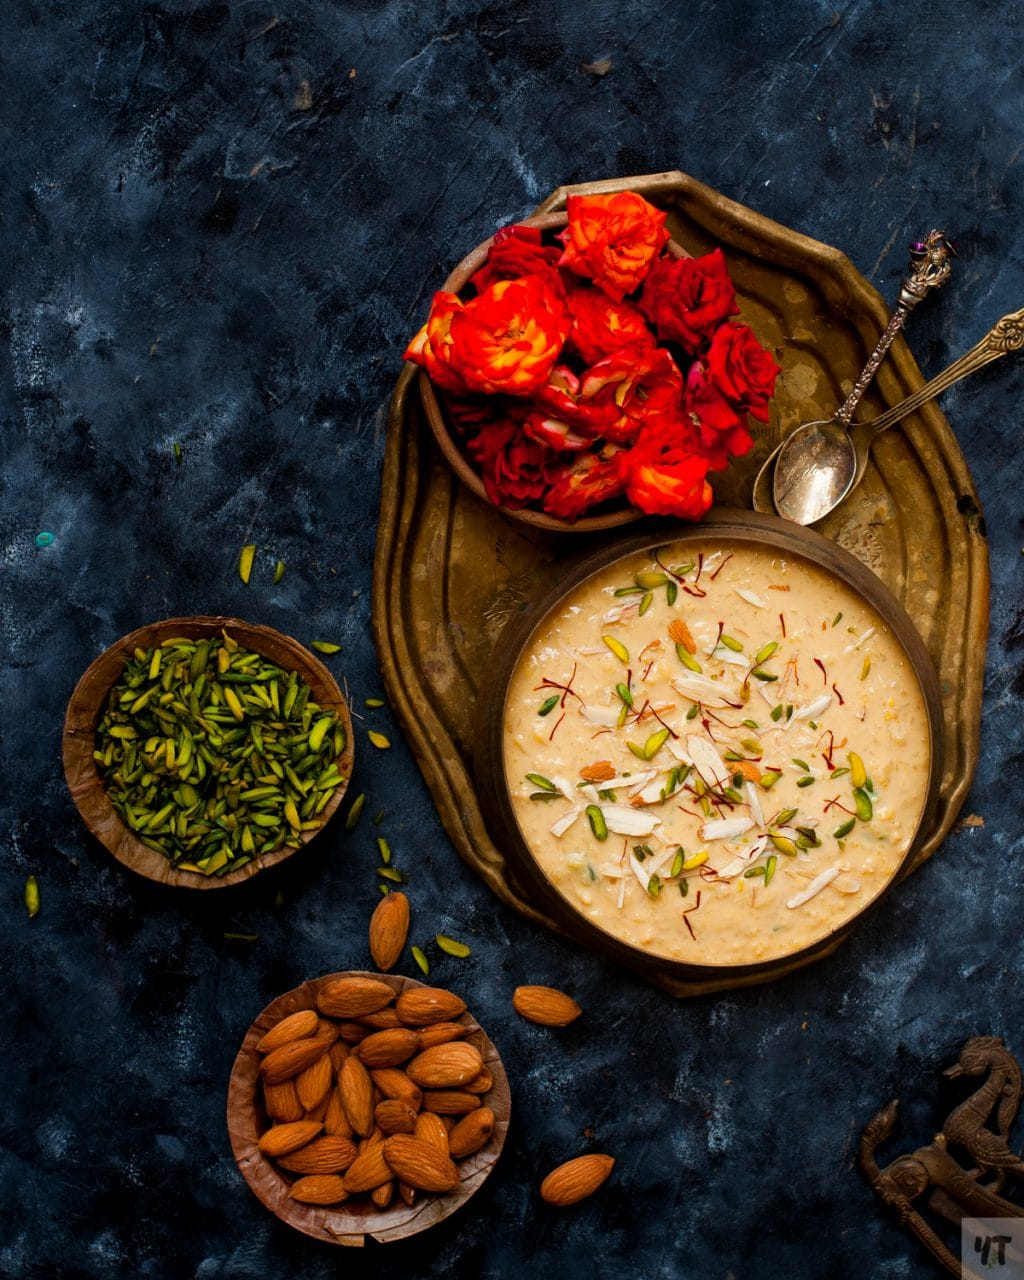 Instant Pot Kheer - Traditional Indian Rice Pudding made in less than 30 minutes.Super Quick and hands off method of making the Best Indian Kheer ever! #instantpot #kheer #instantpotricepudding #ricerecipe #pressurecooker #easykheer